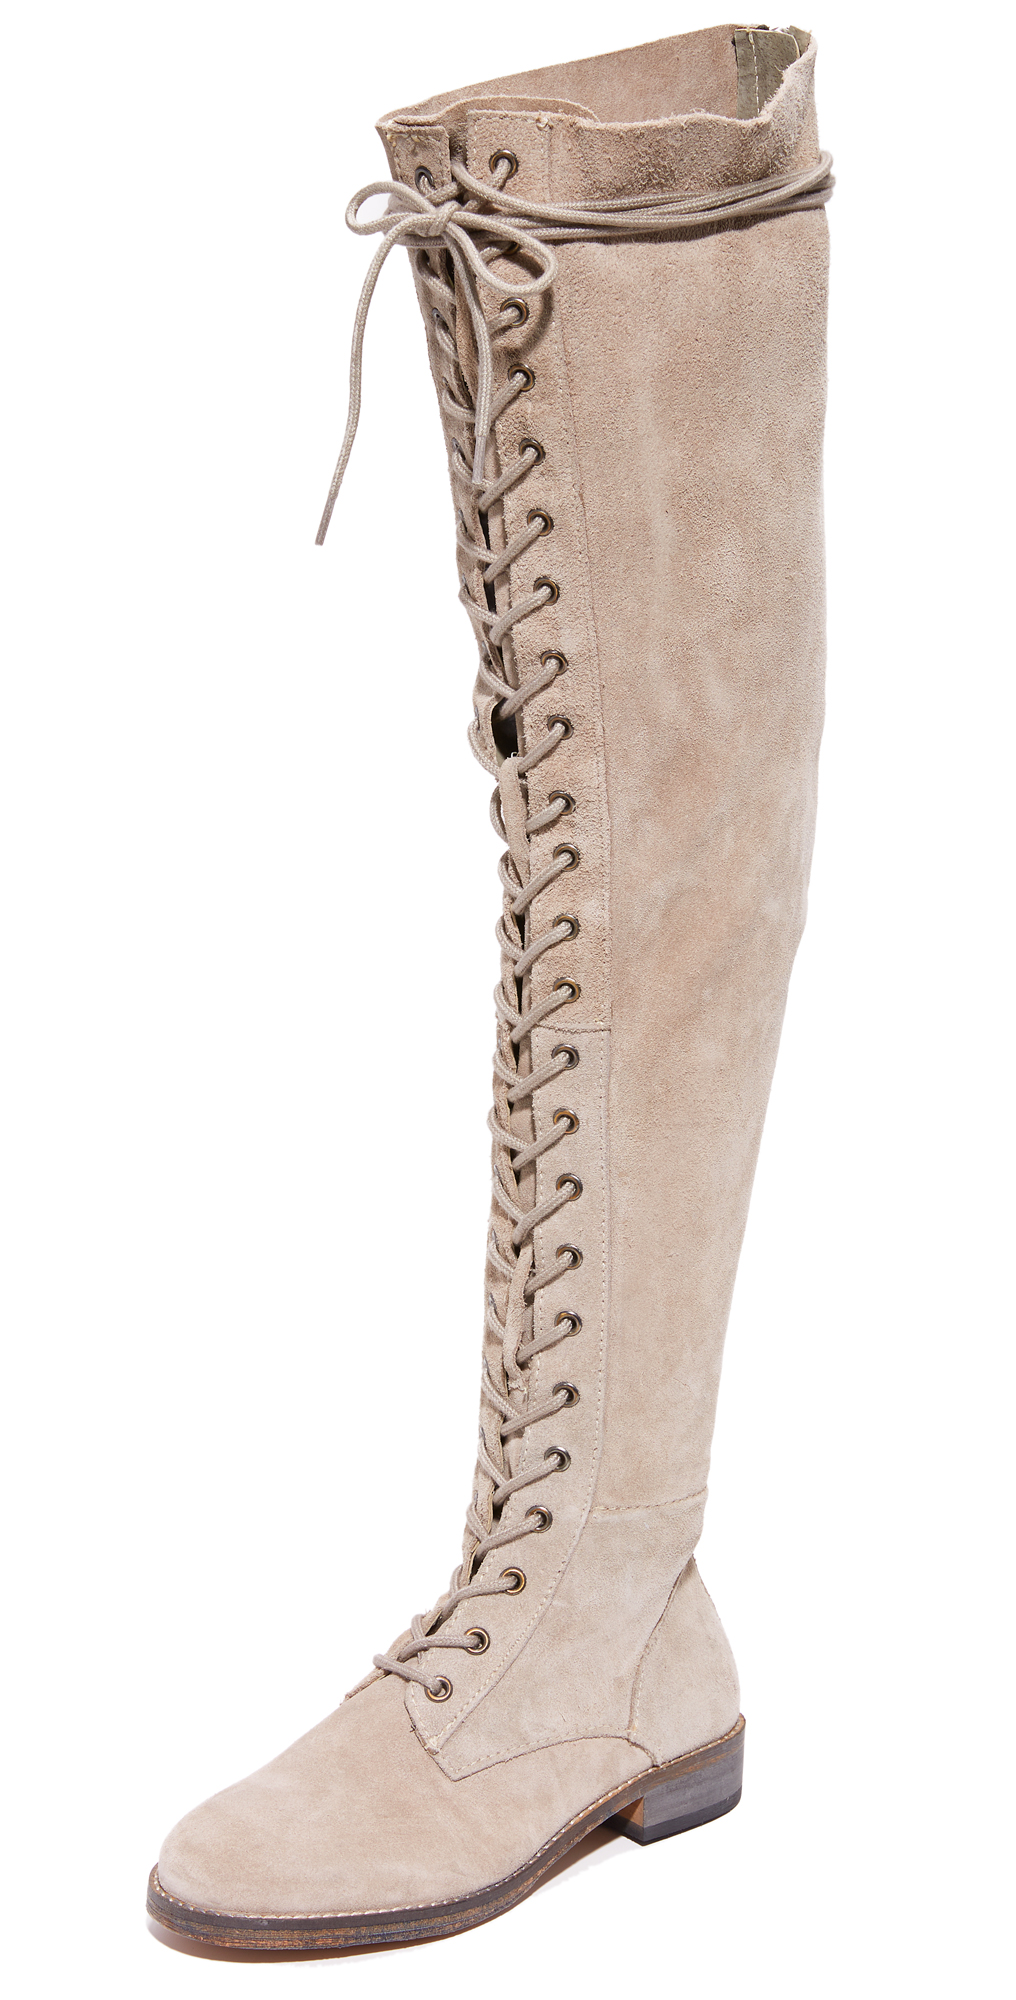 Tennessee Lace Up Boots Free People